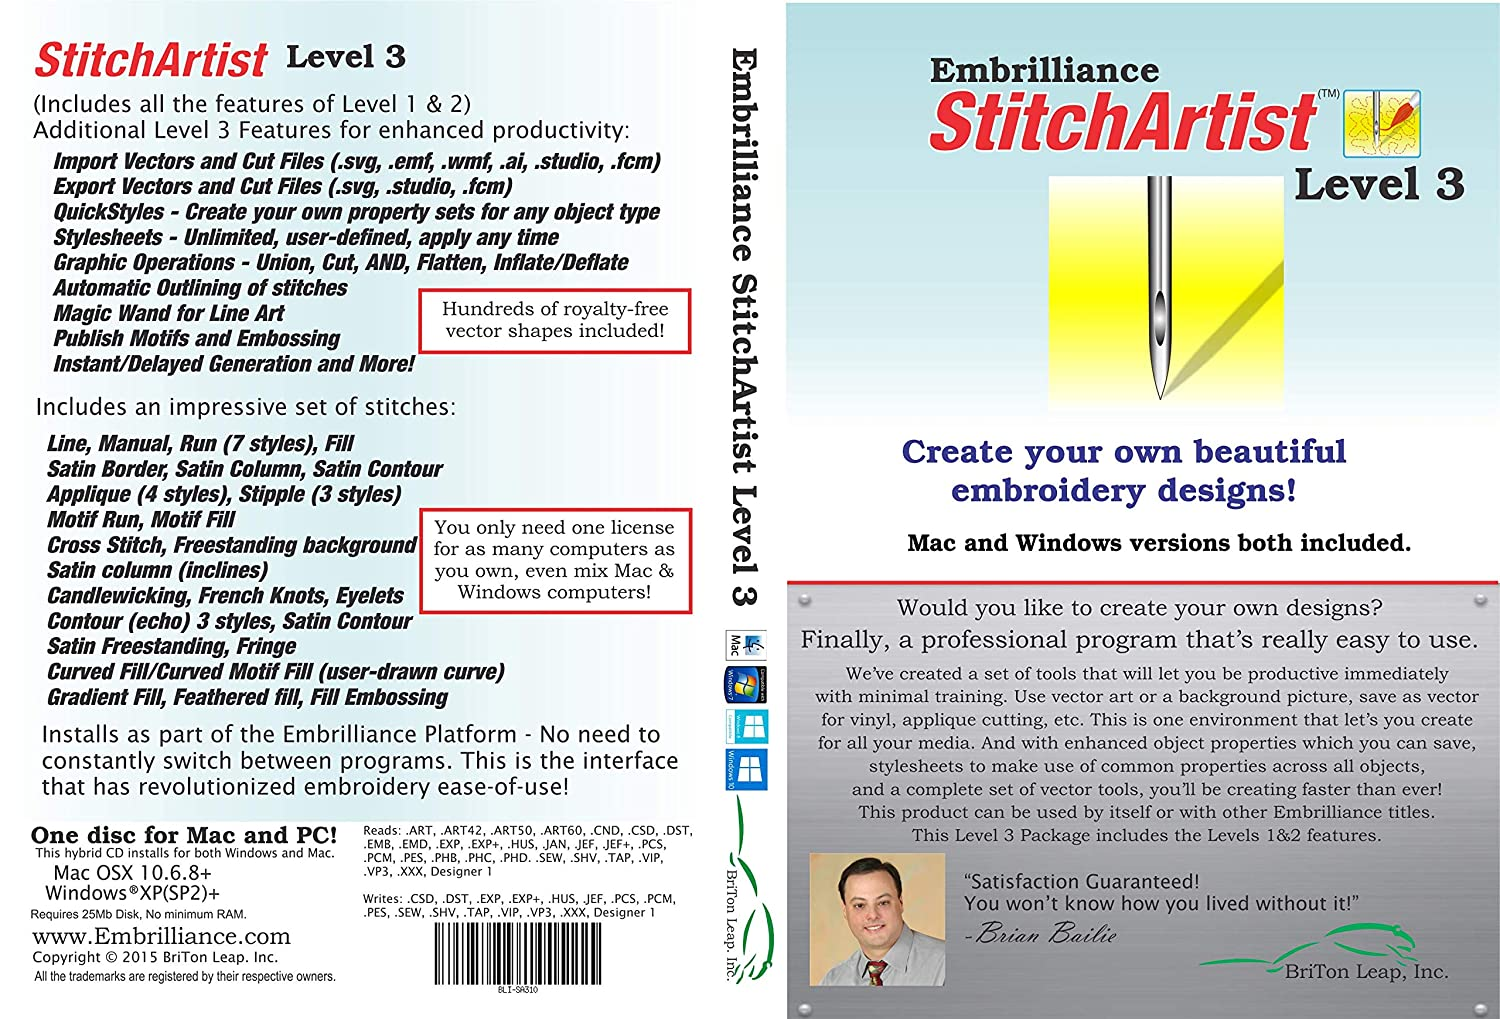 Embroidery Software-Best commercialized: Embrilliance Stitch Artist Level 3 Digitizing Software for MAC and PC